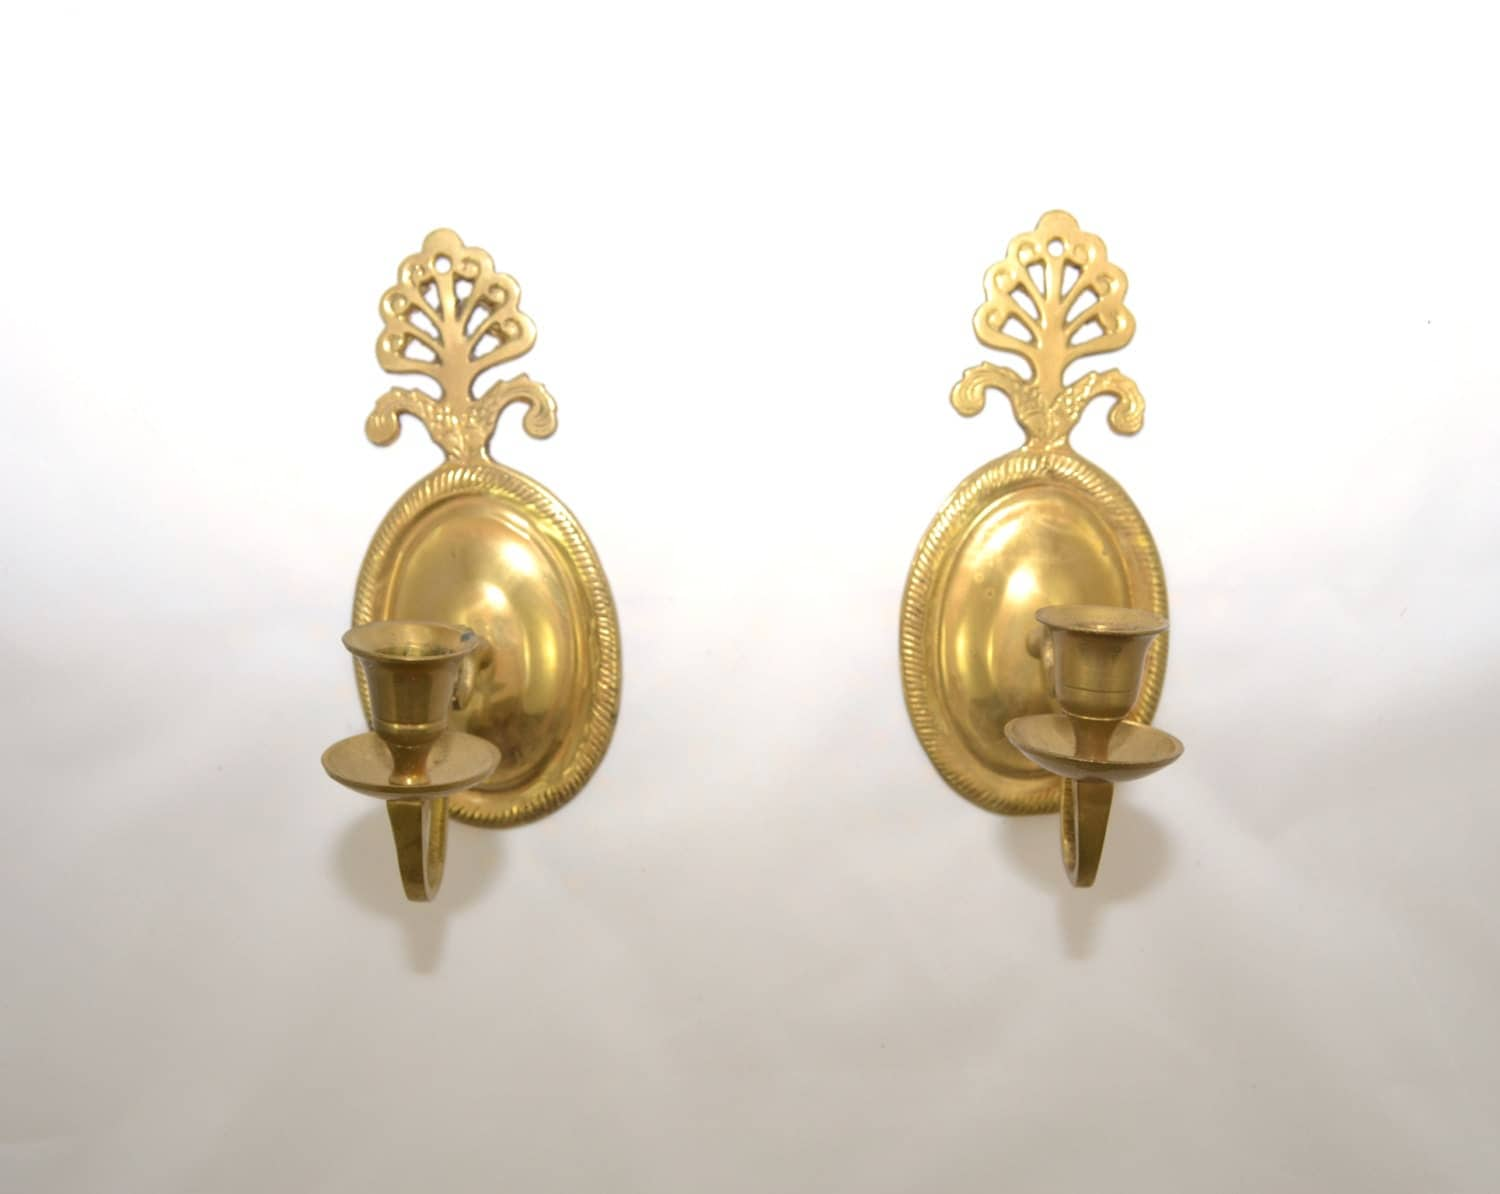 Candle Wall Sconces Vintage : Candle Holder Wall Sconce Brass Wall Sconce Candle Holders Art